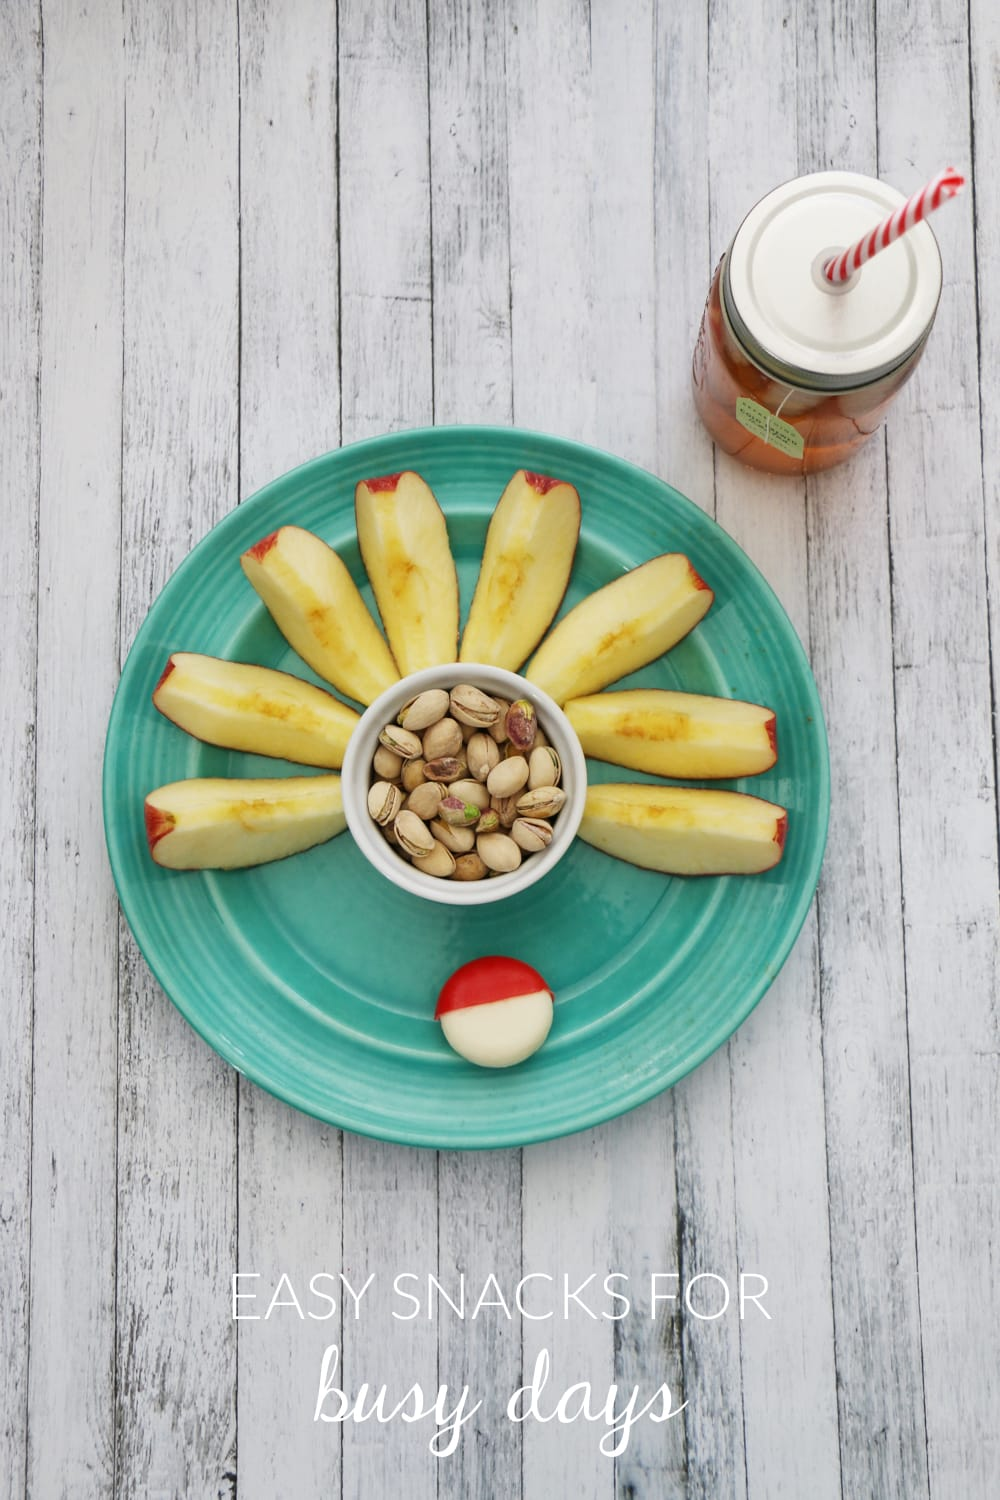 Easy Snacks for Busy Days #SkinnyNut